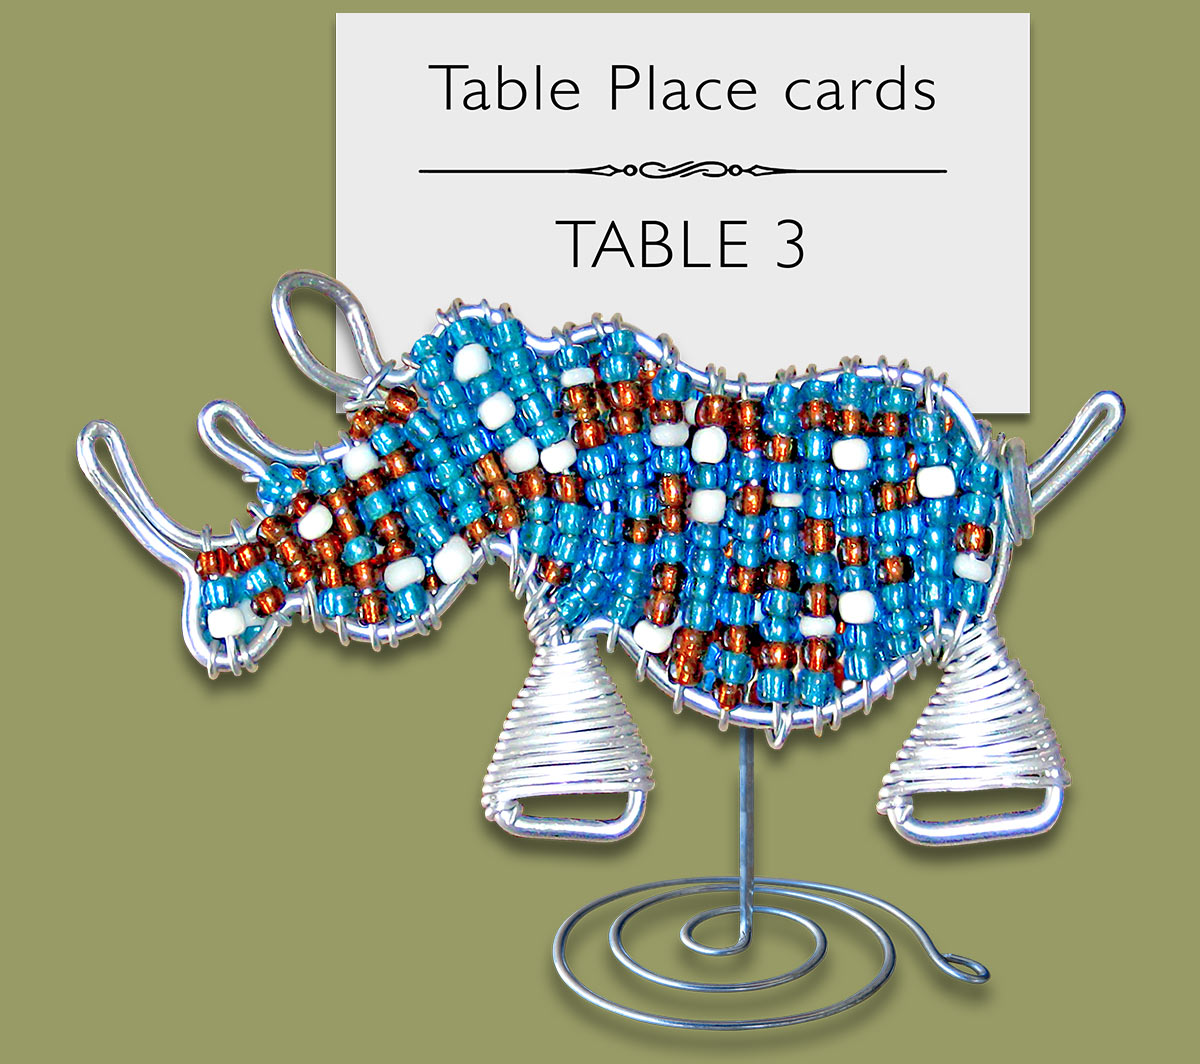 Z1 Table Place Card Holders (Bulk Purchase)